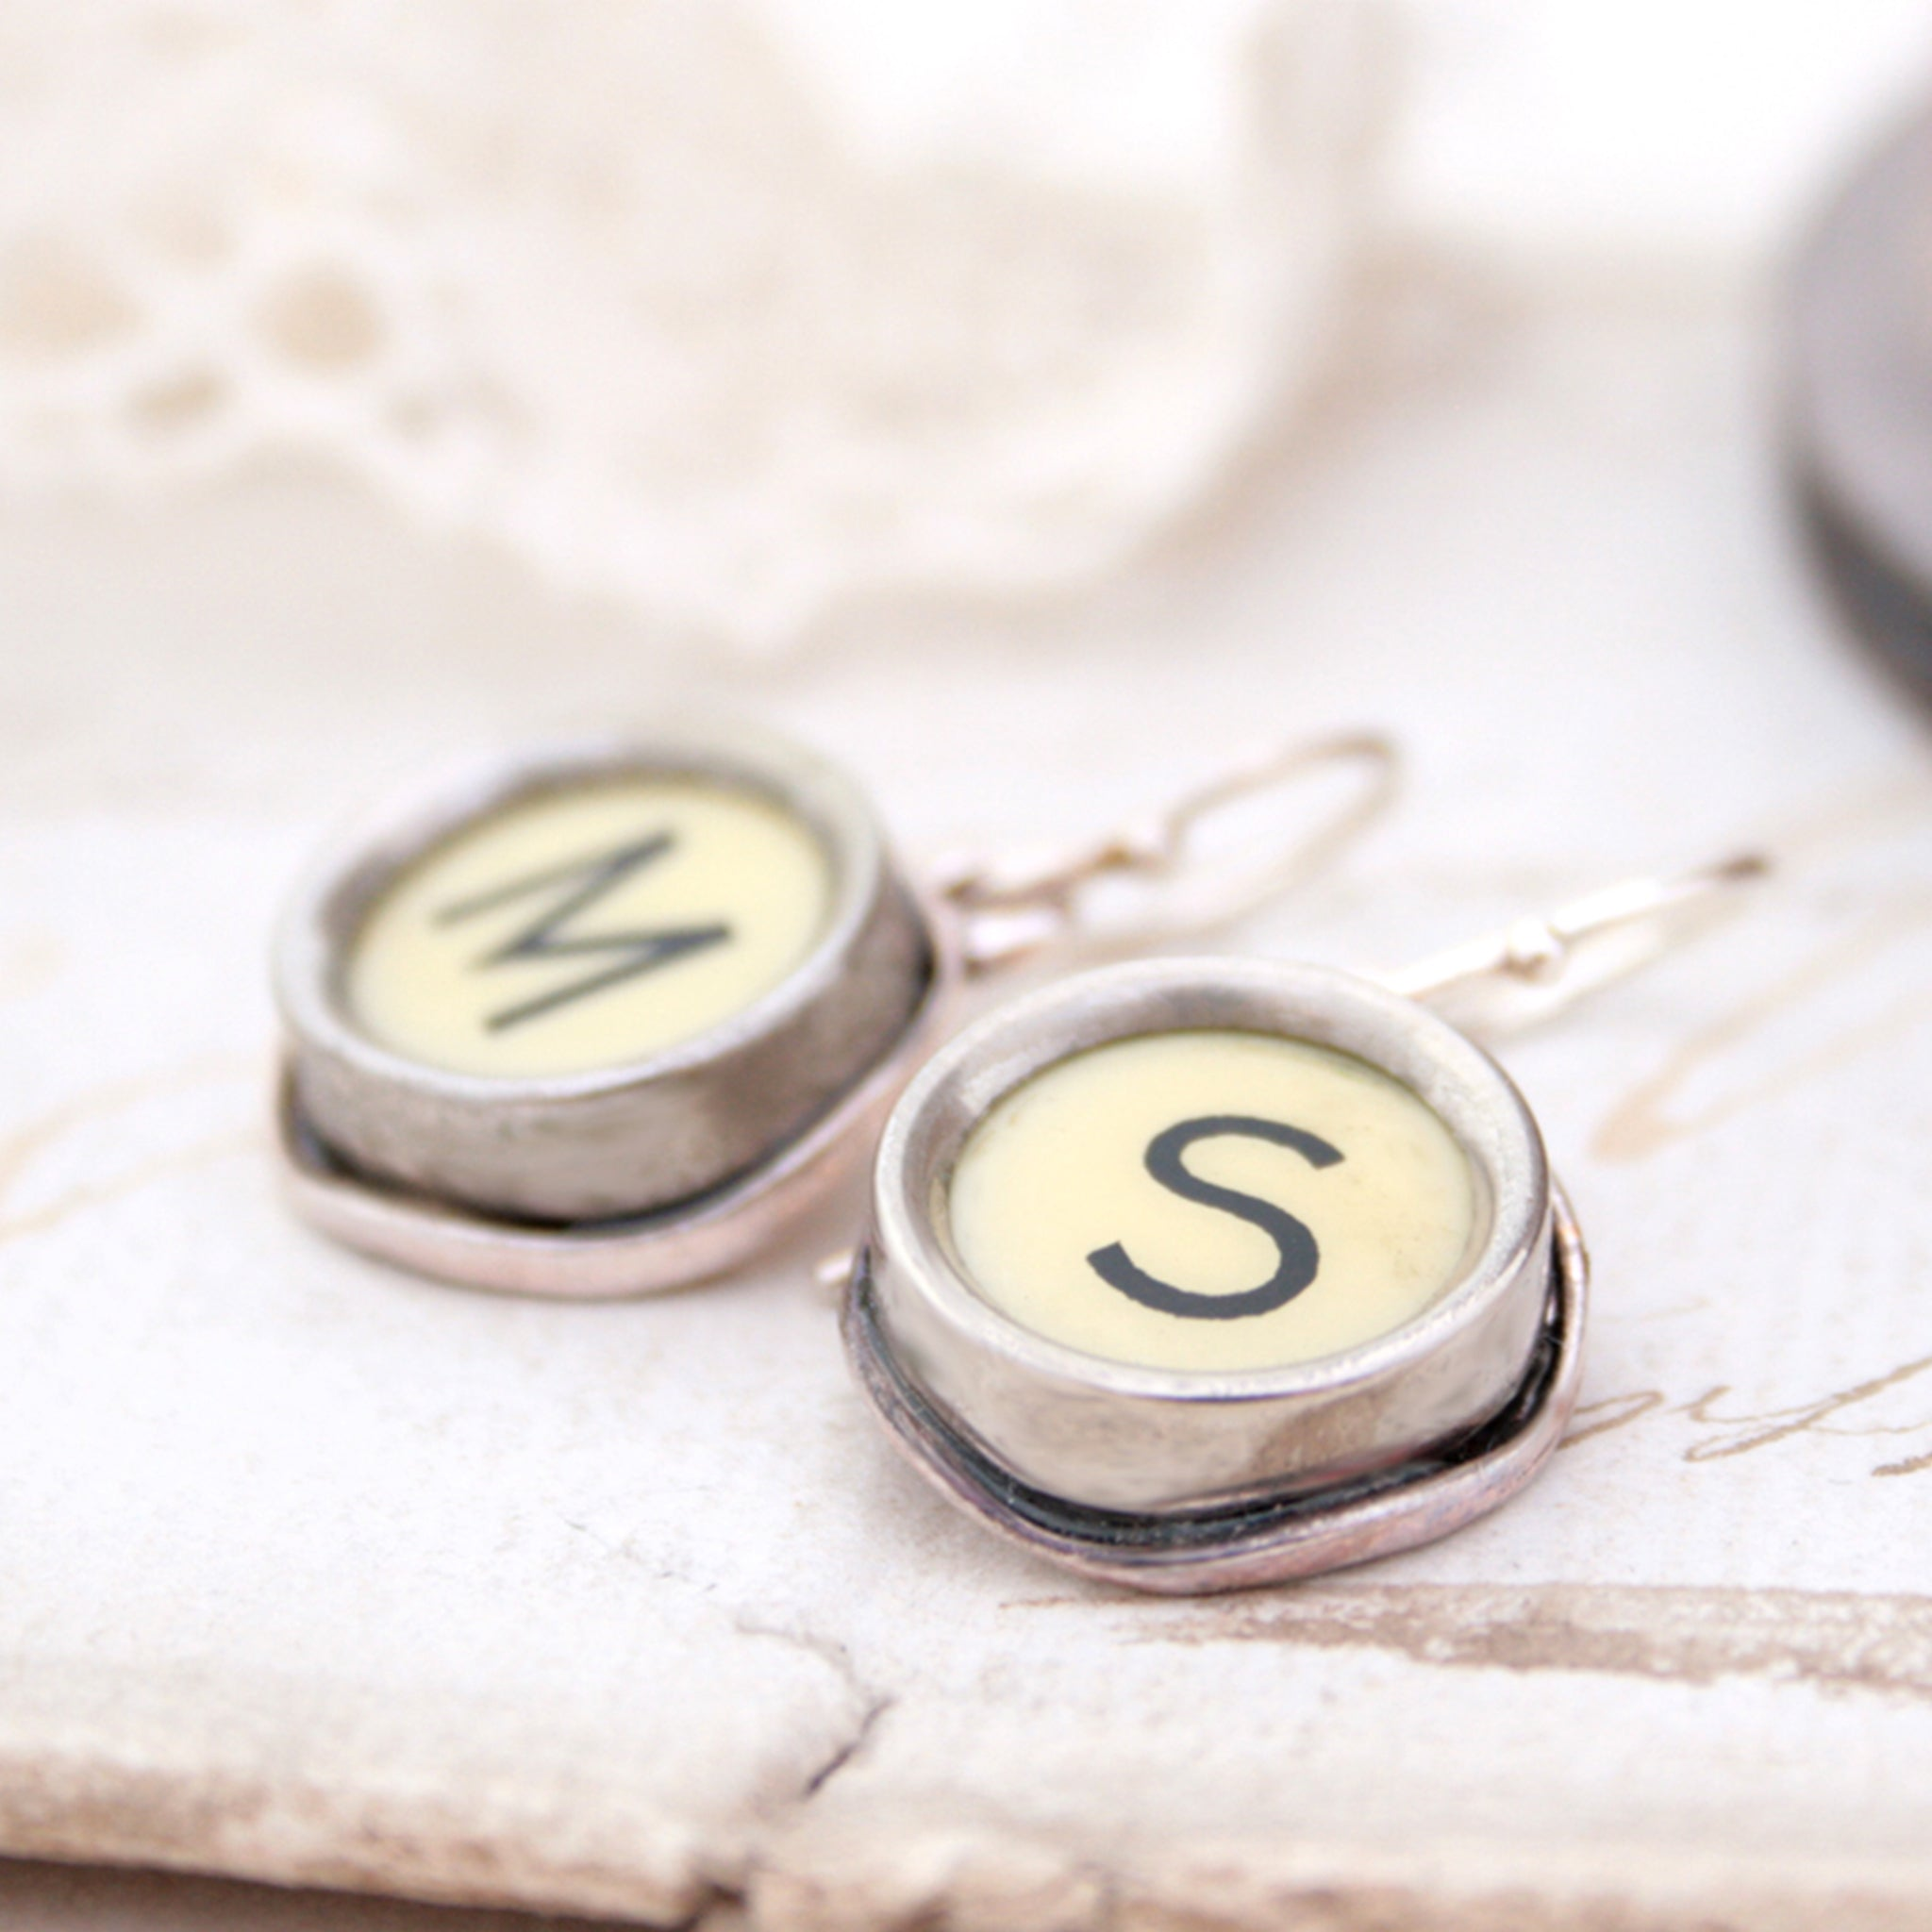 M and S Ivory Typewriter keys turned into initial earrings